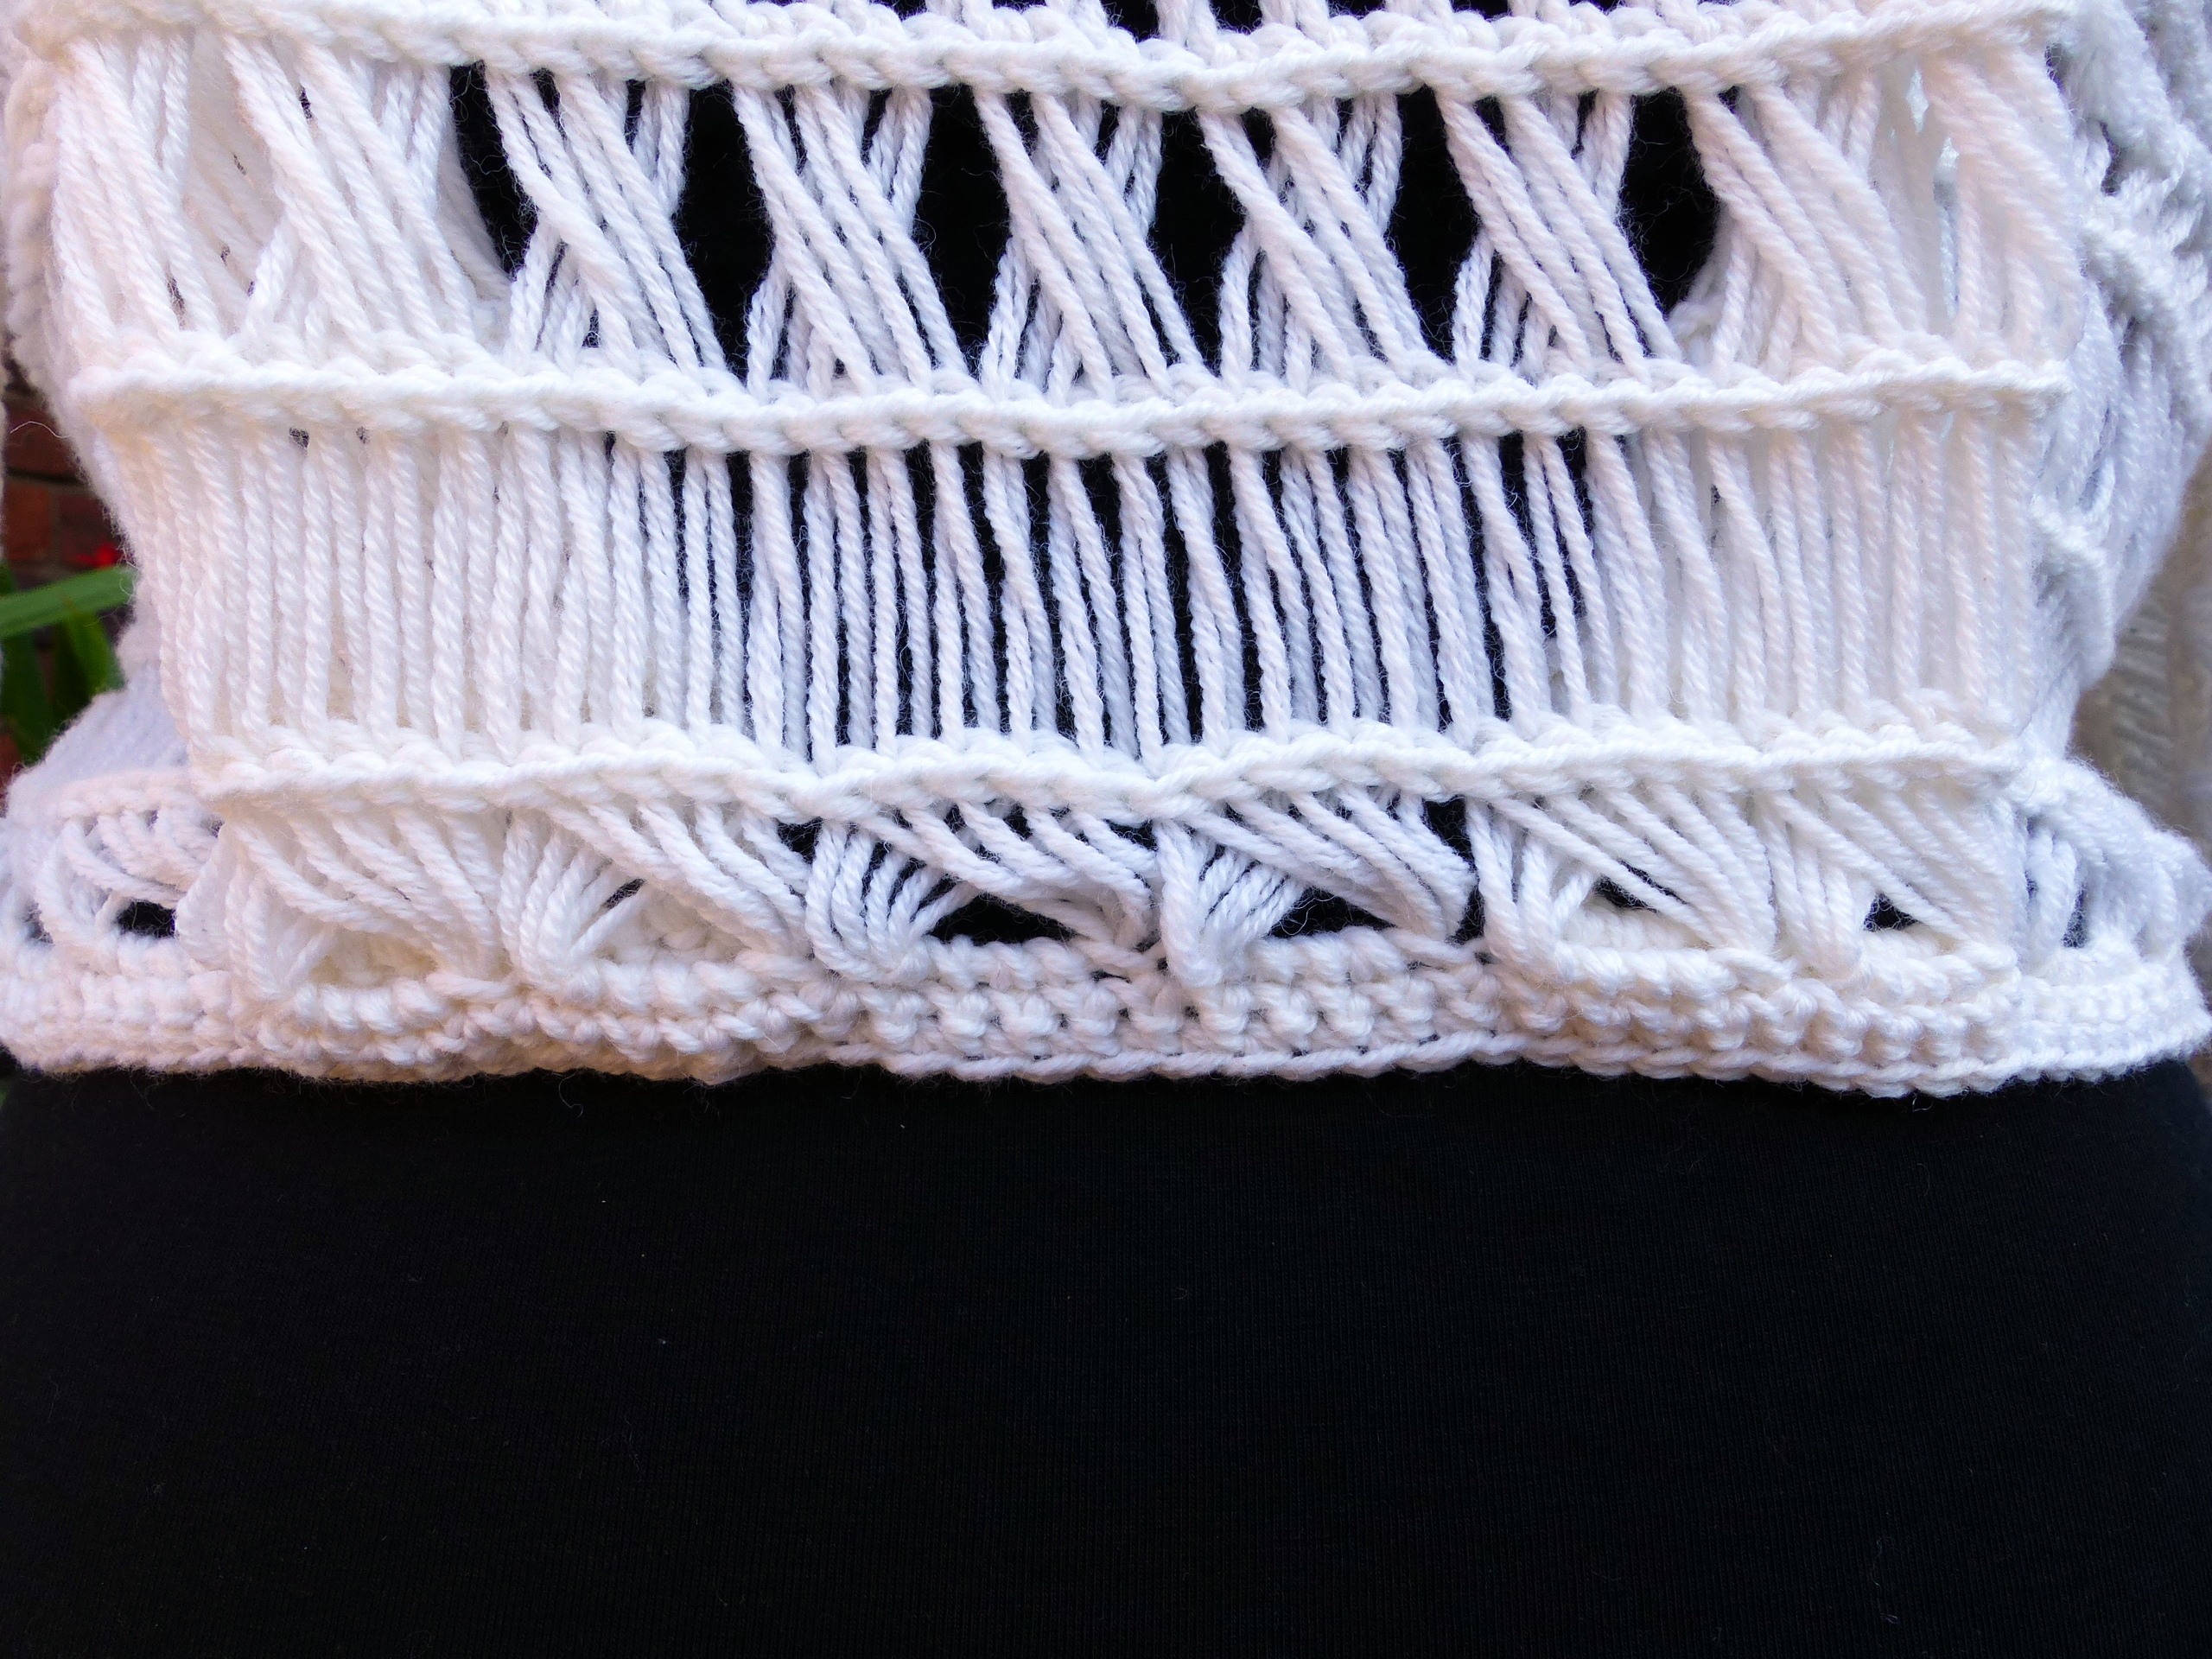 Indian Summer Lace Top   Make My Day Creative